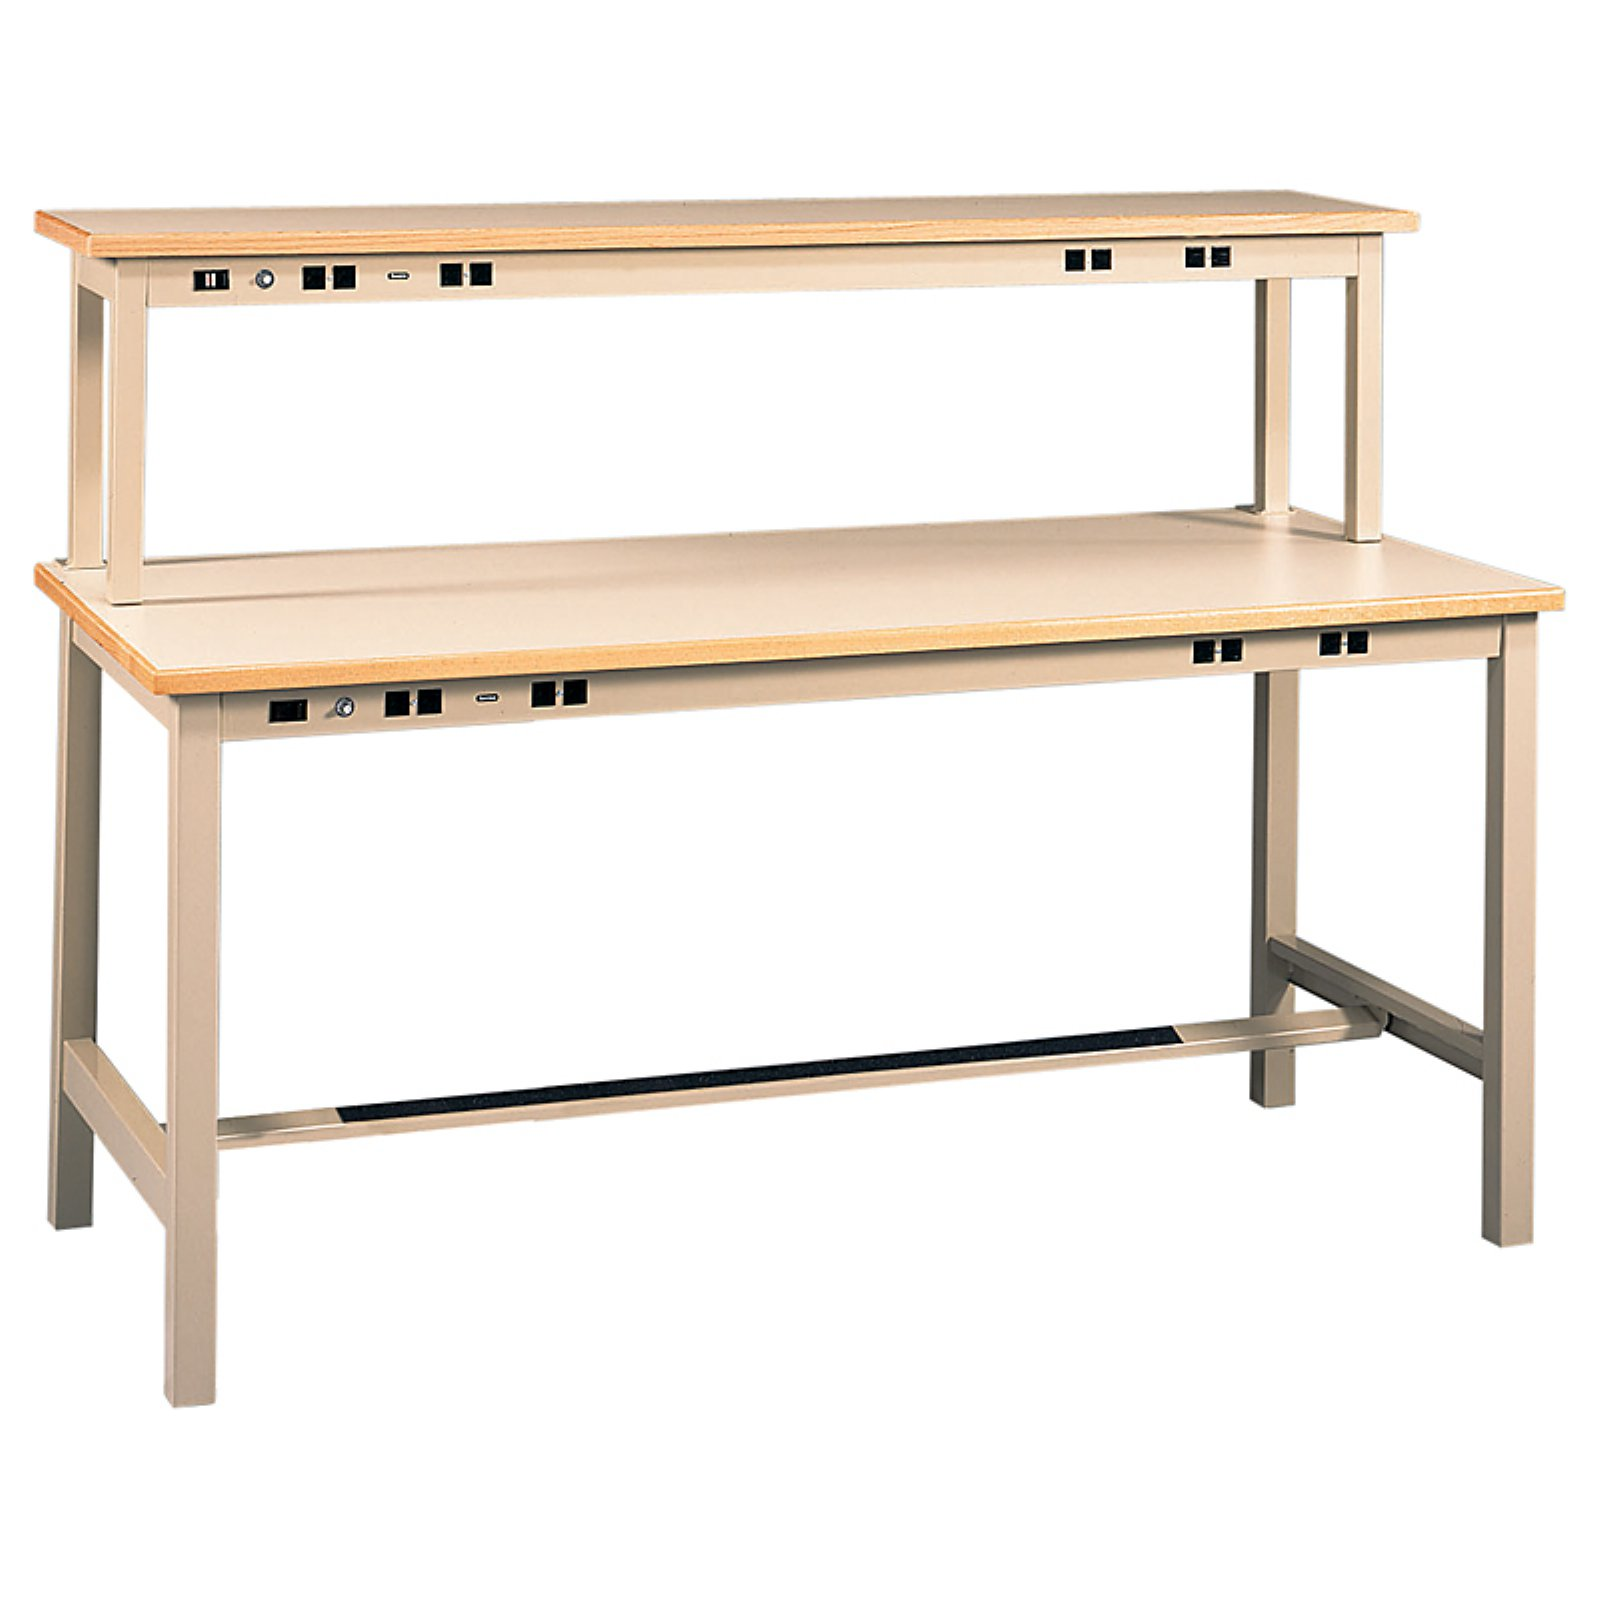 Tennsco Technical Workbench with Power Rail and Instrument Shelf-60 inches